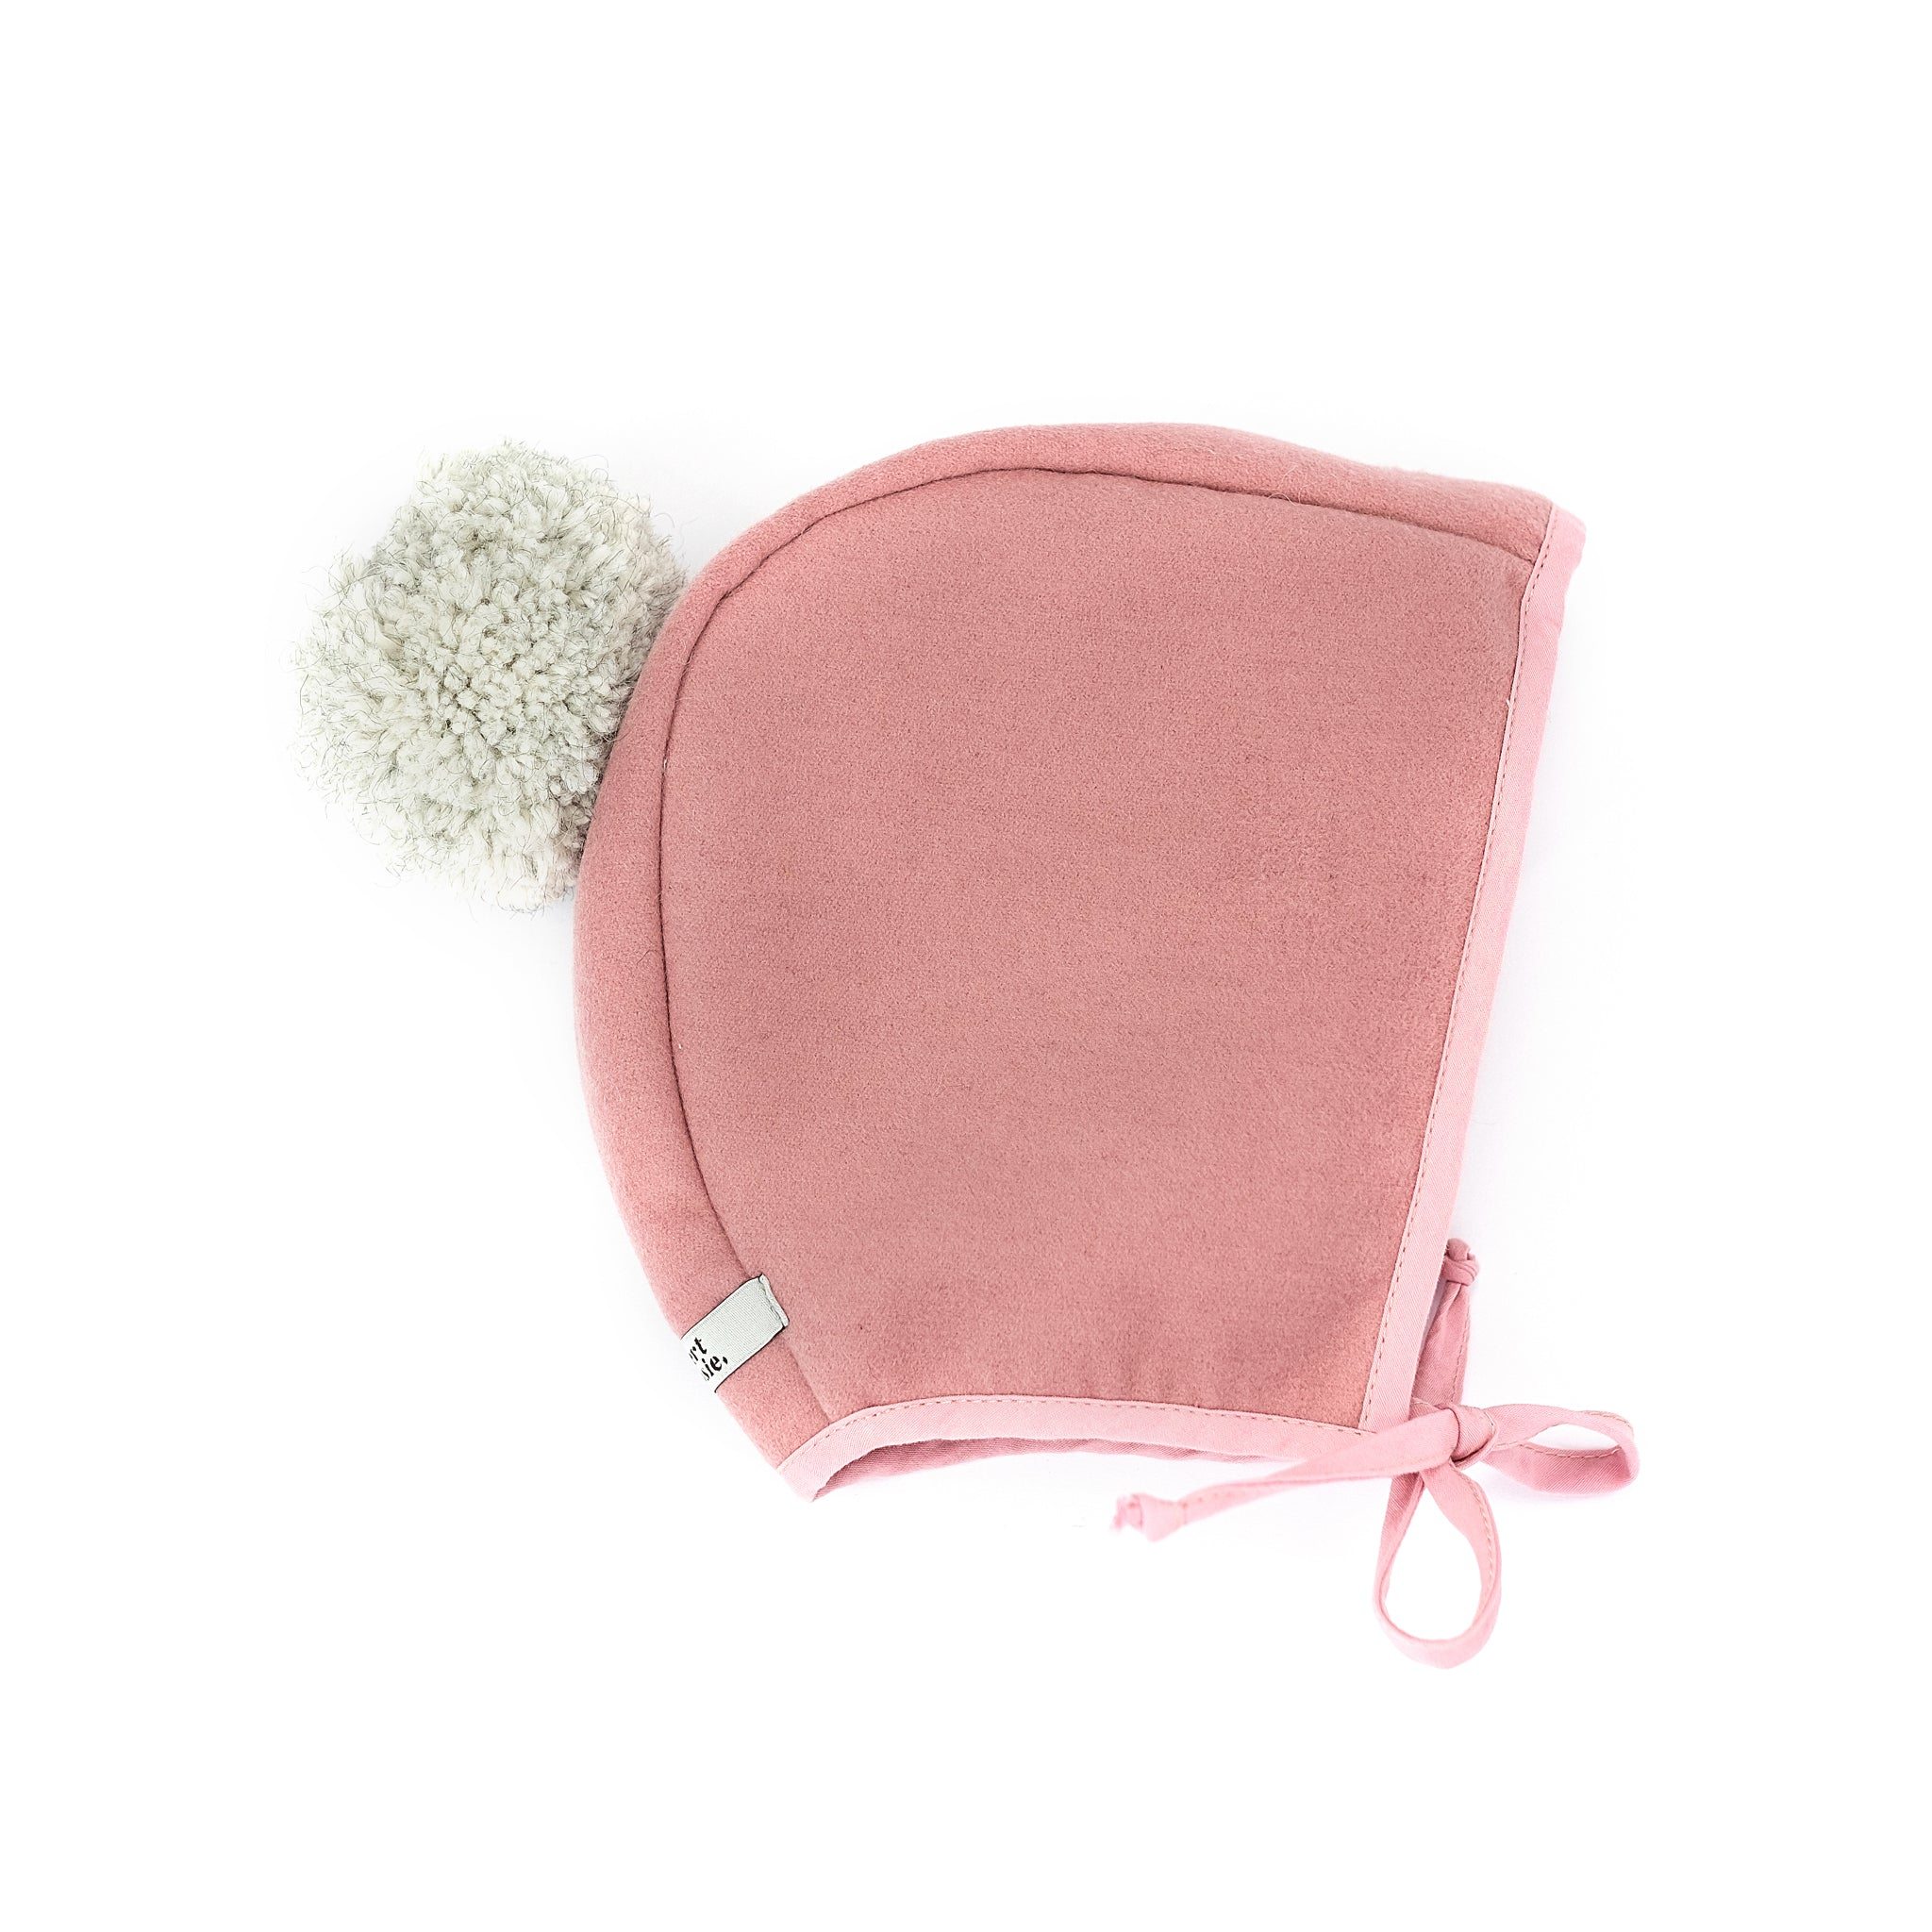 Melton Bonnet - Pink with Grey Pom Pom